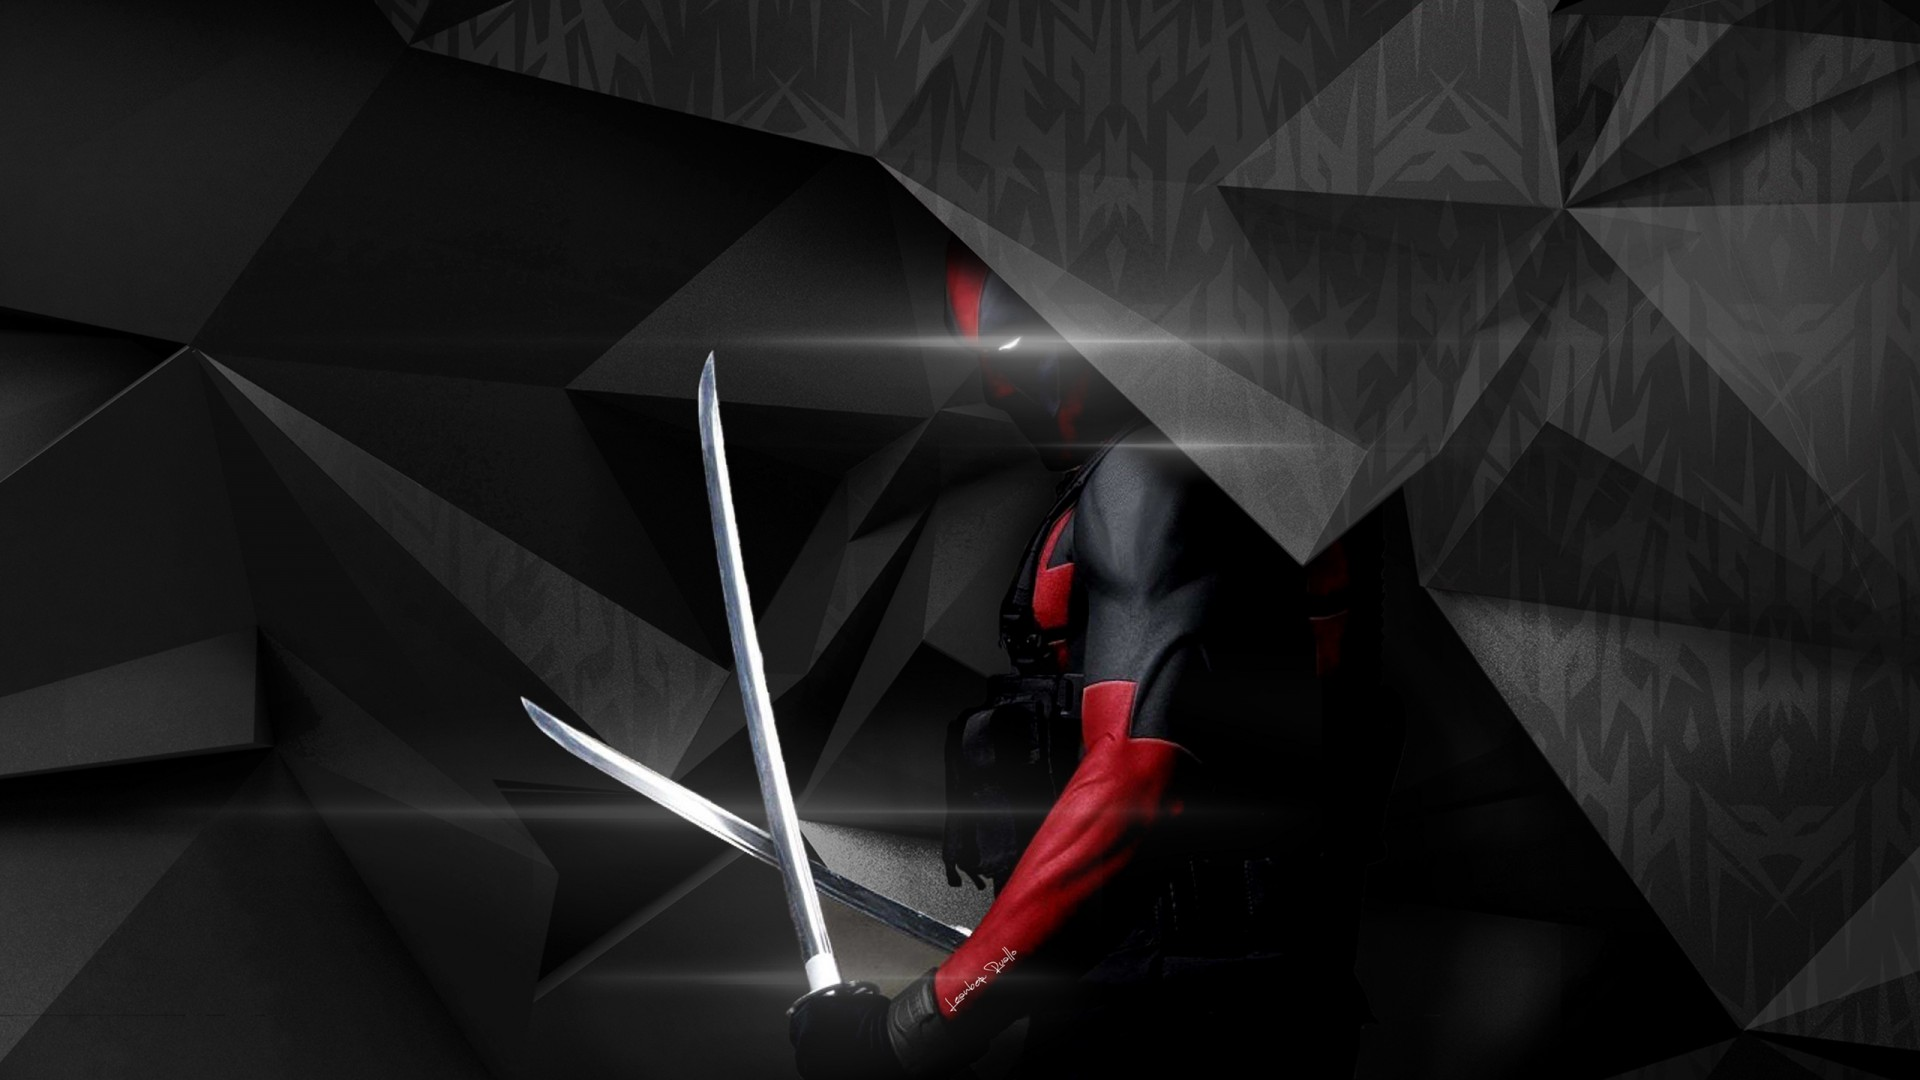 3d Wallpaper 1280x1024 Deadpool Abstract Artwork Wallpapers Hd Wallpapers Id